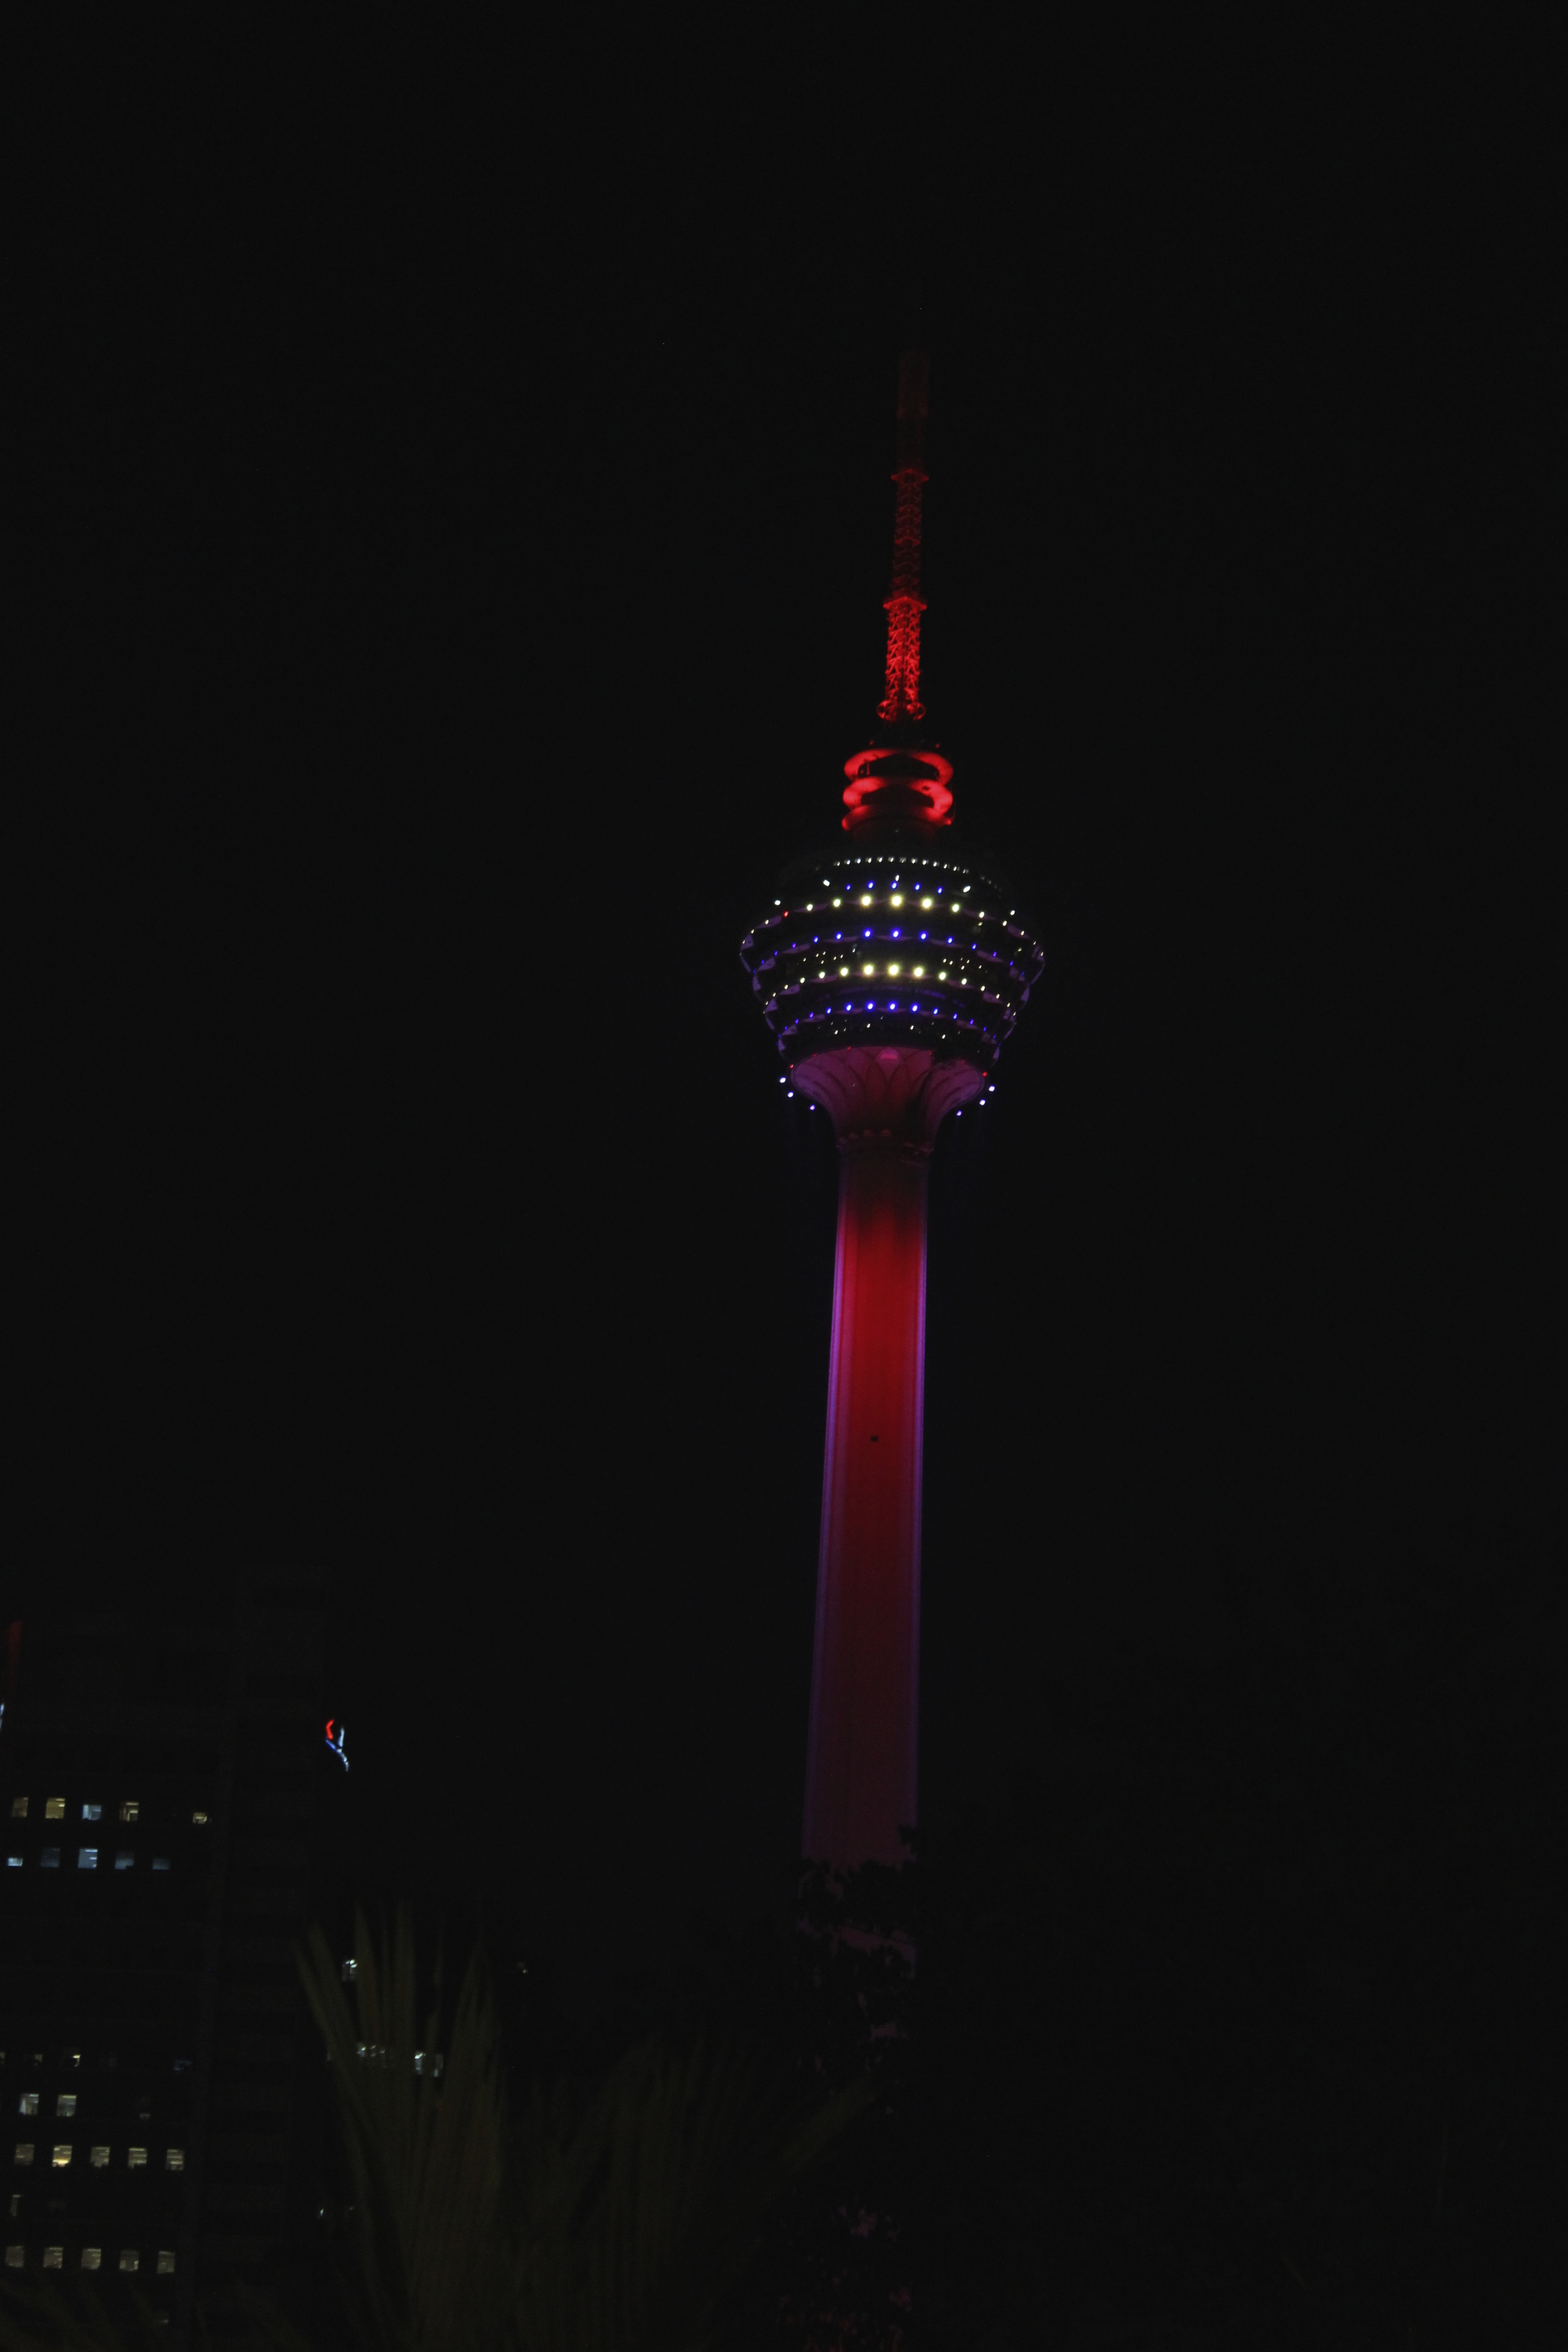 Skydeck KL tower at night